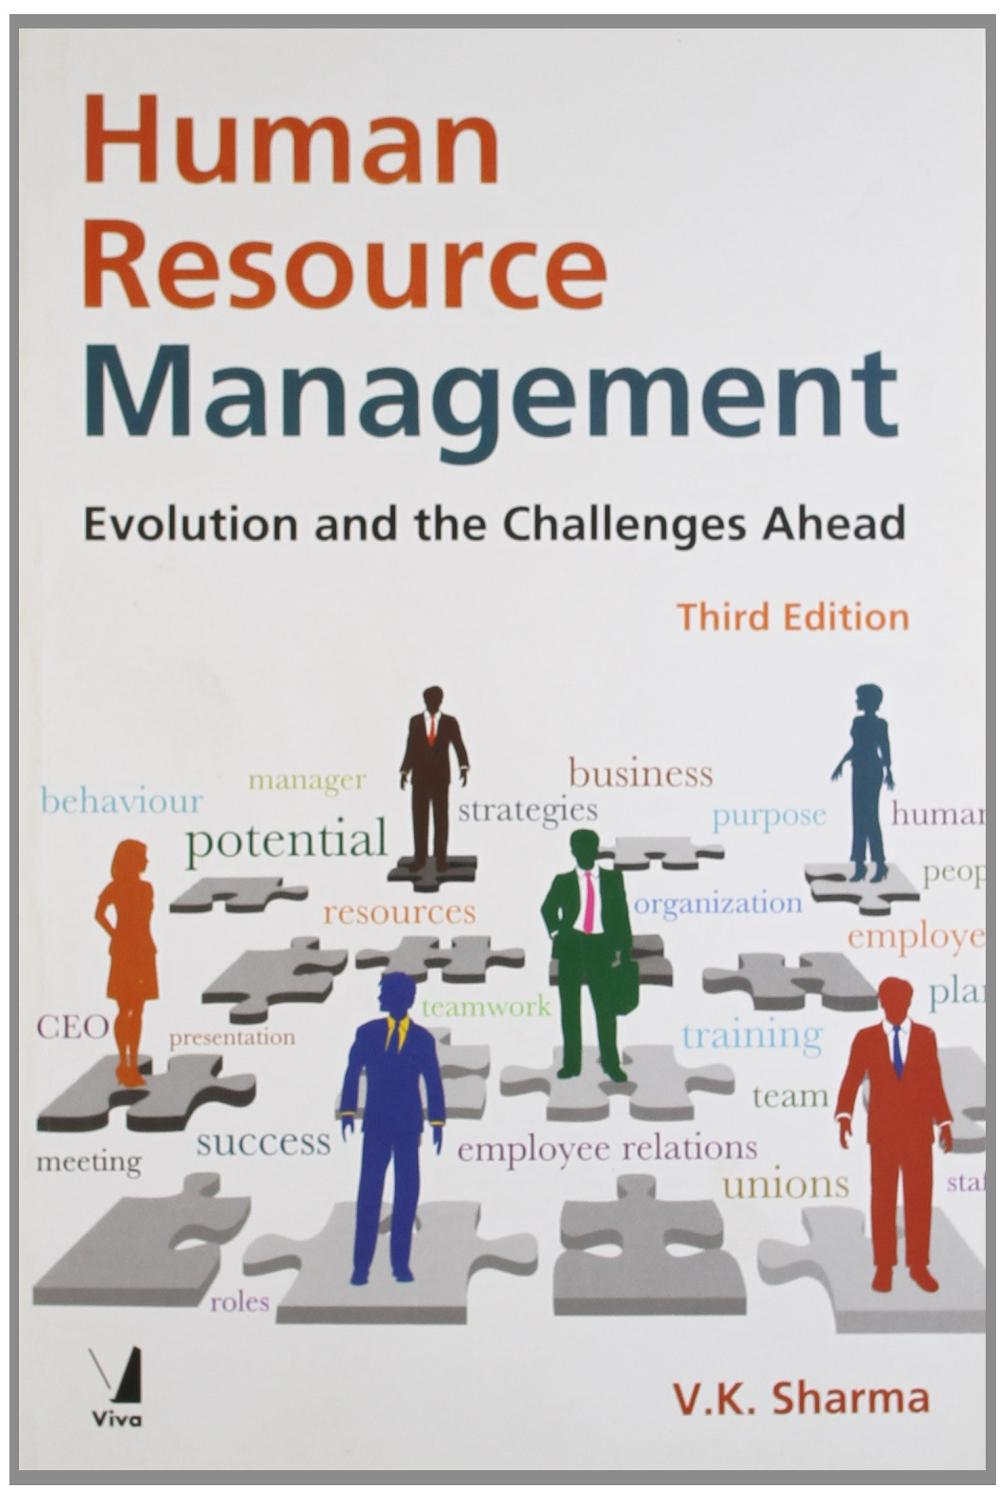 challenges that human resources management